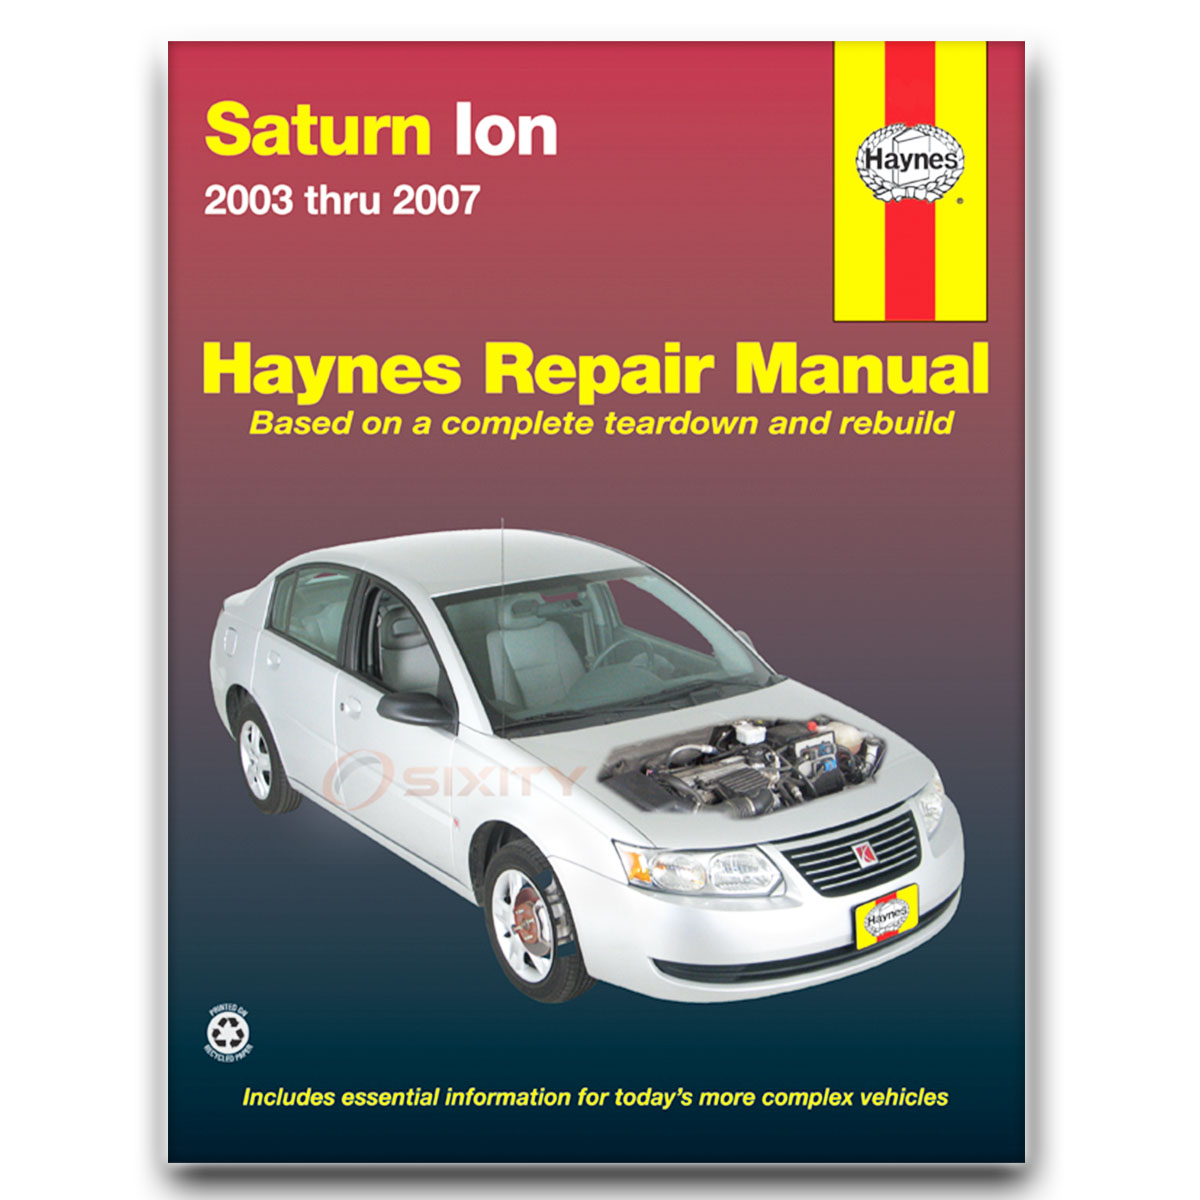 saturn ion haynes repair manual red line shop service garage book ux rh ebay com repair manual for 2006 saturn ion 2007 Saturn Ion